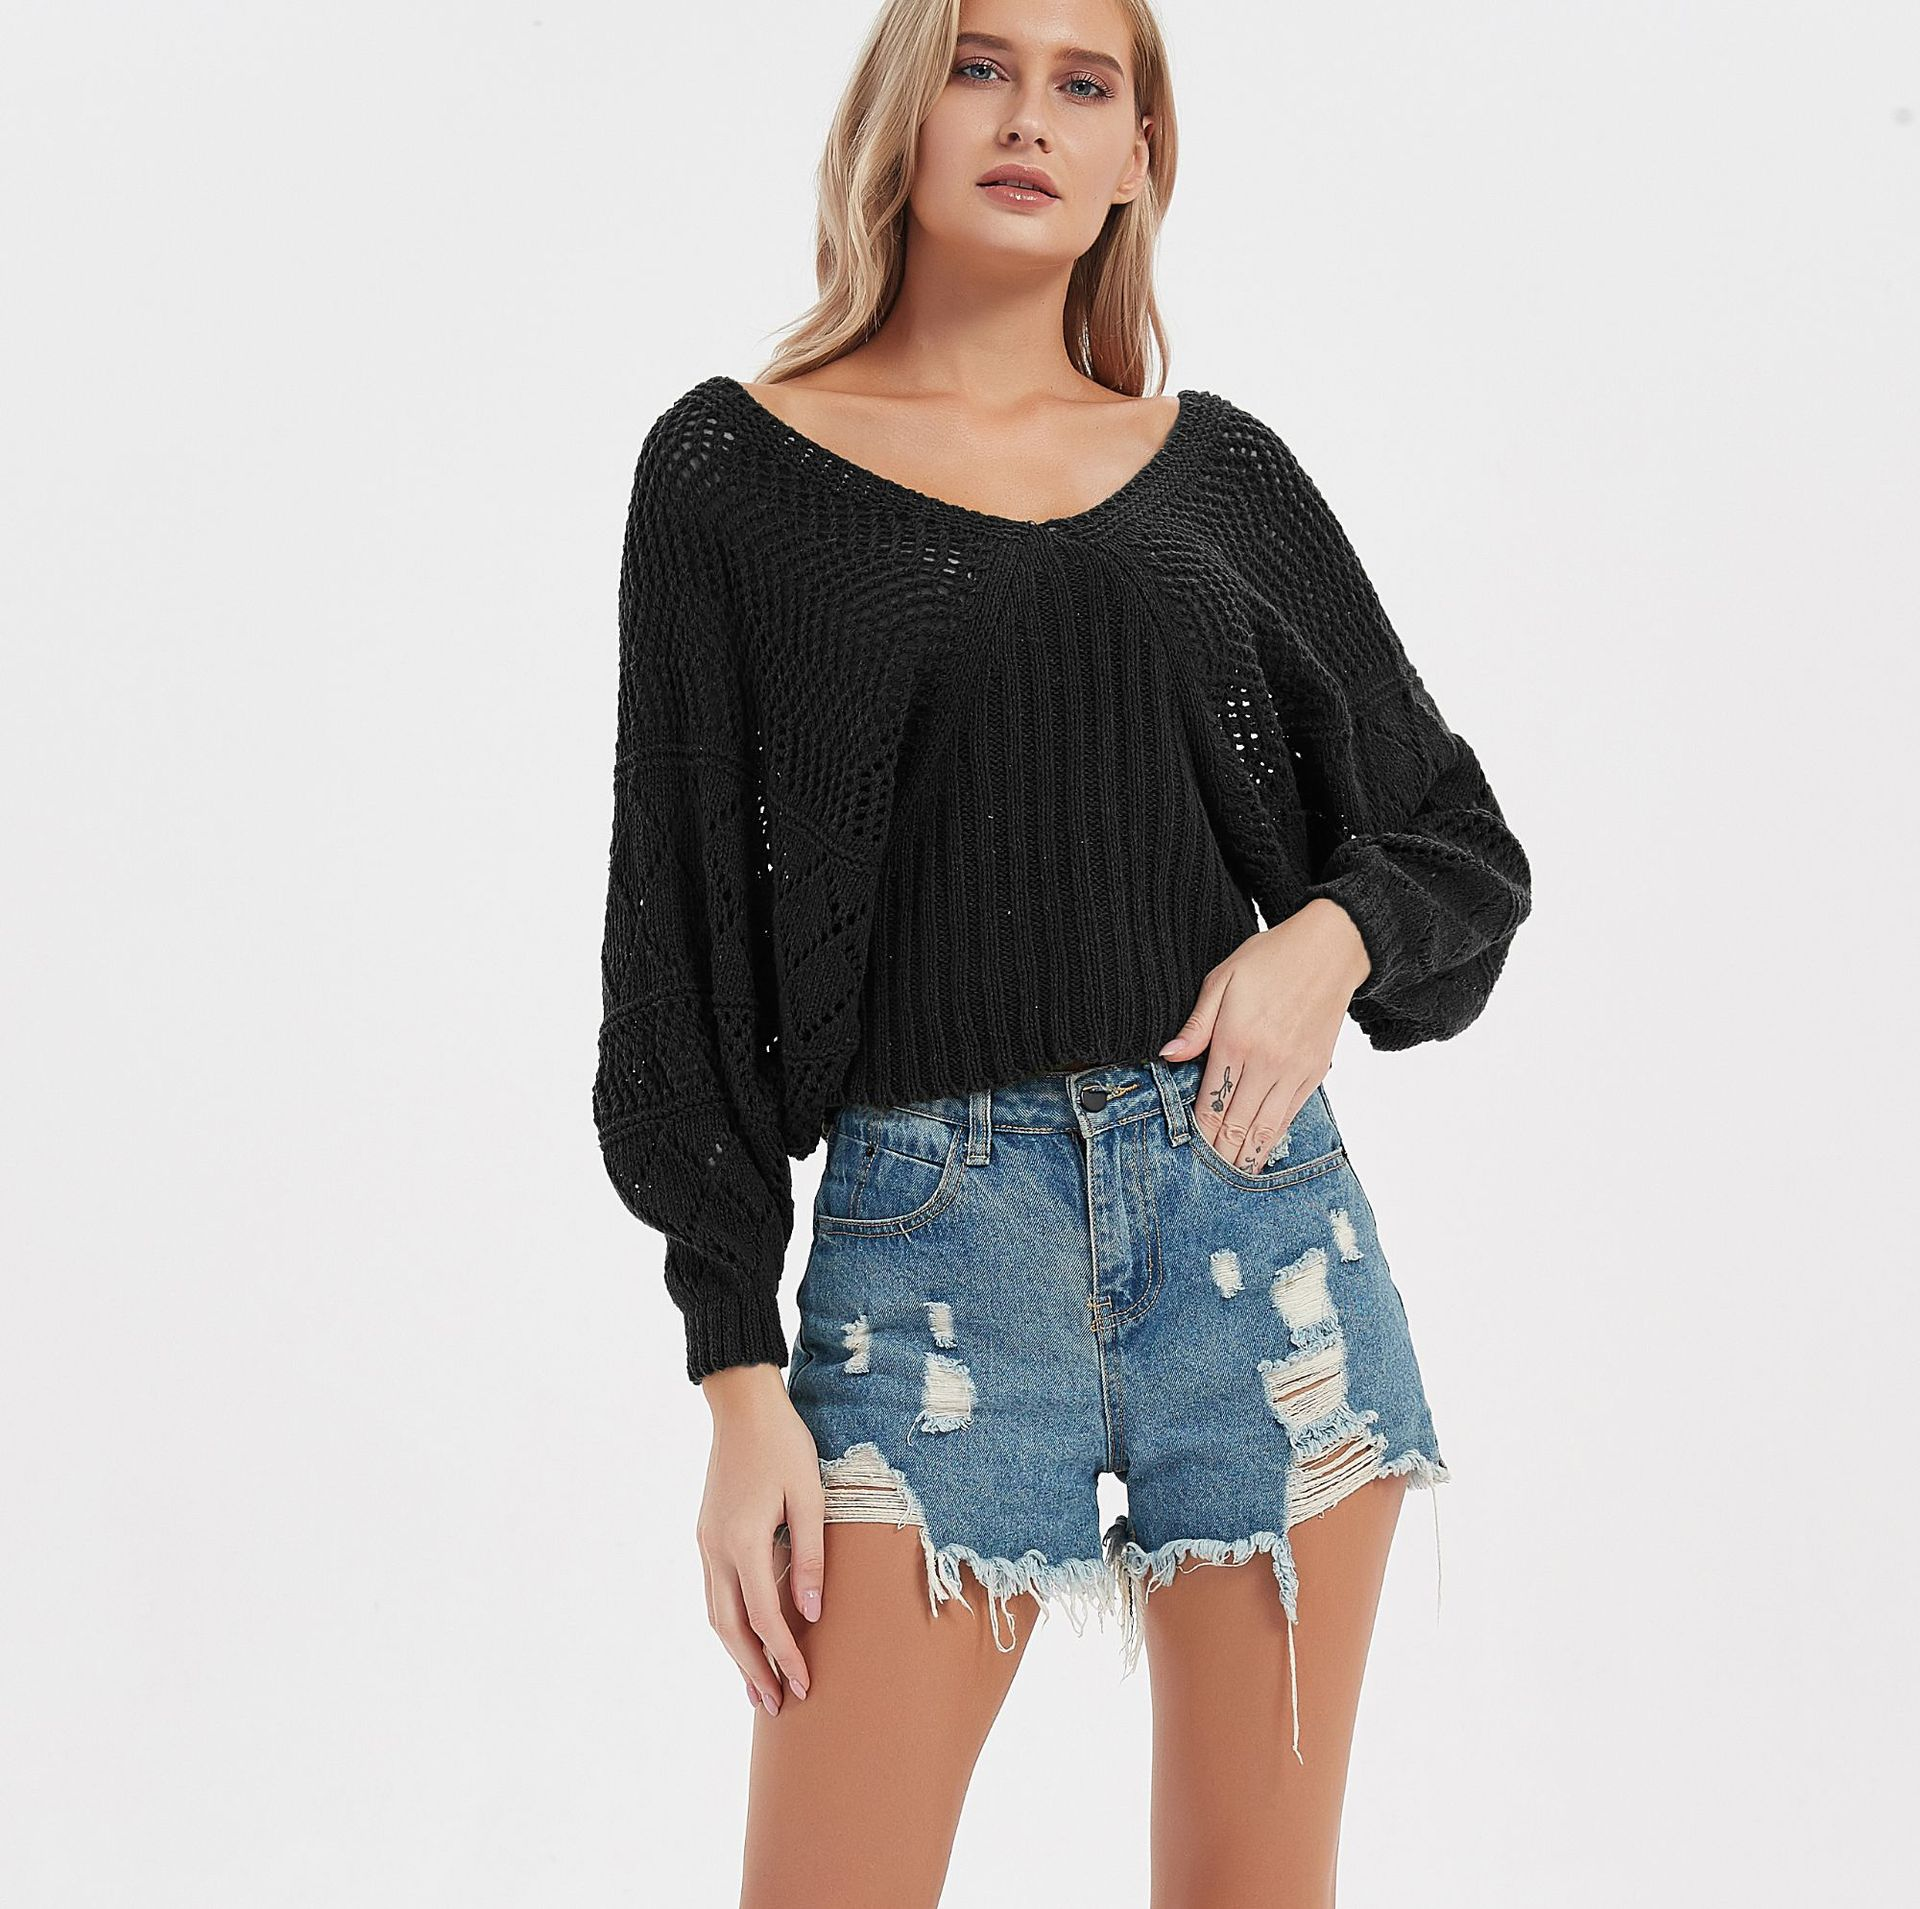 Knitted sweater women 2021 autumn and winter new sexy European and American bat sleeve long sleeve solid color hollow V-neck enlarge